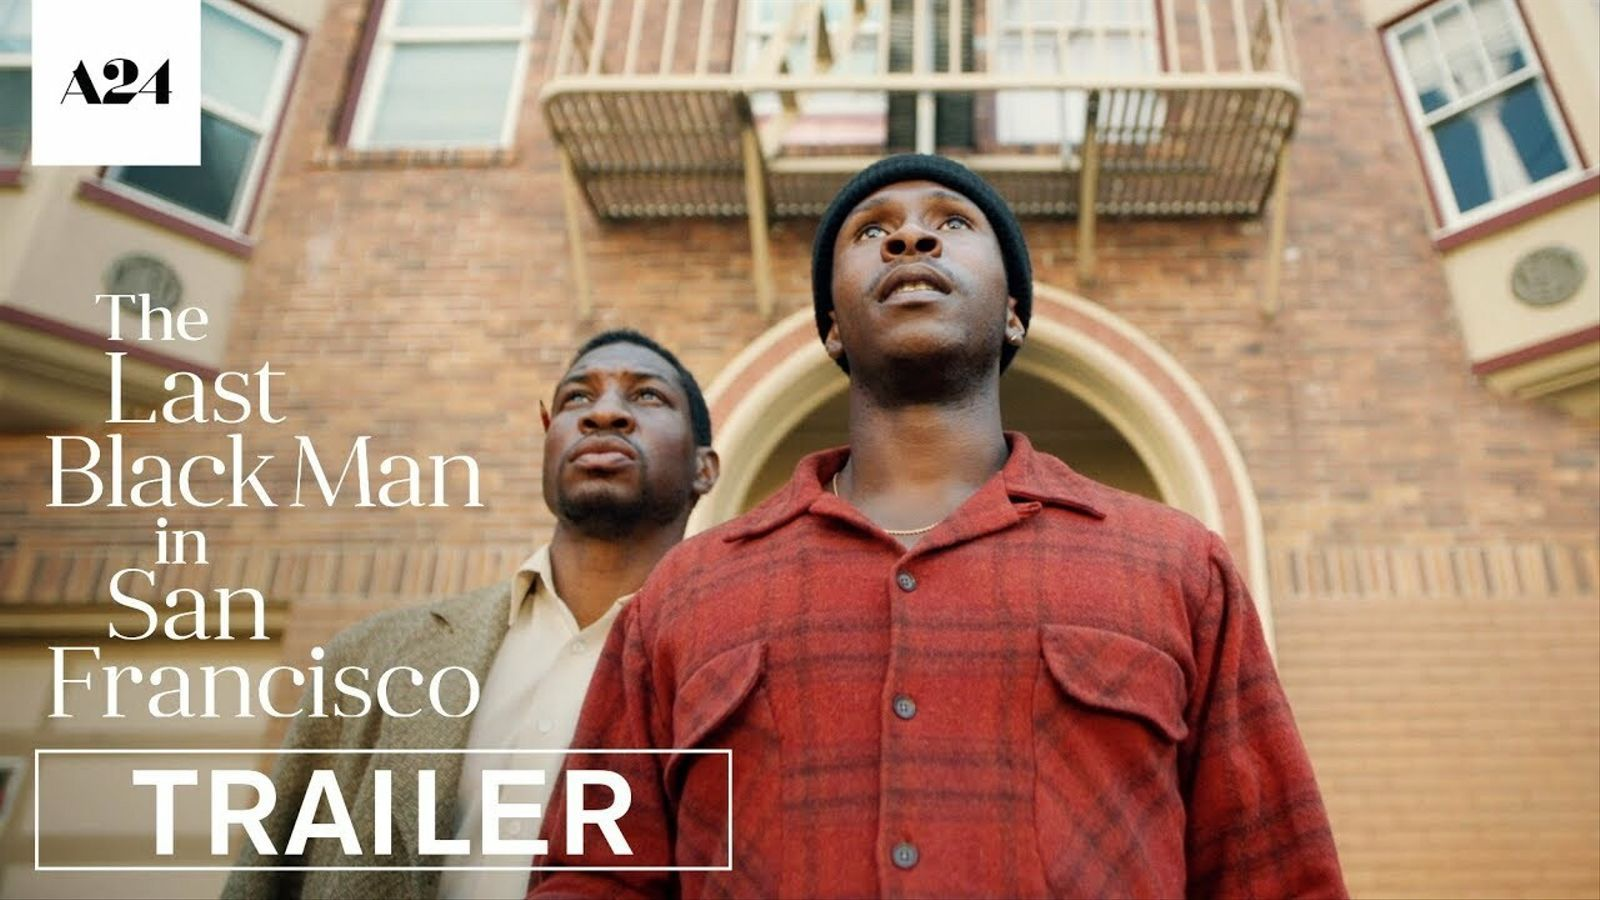 Tràiler de 'The last black man in San Francisco'